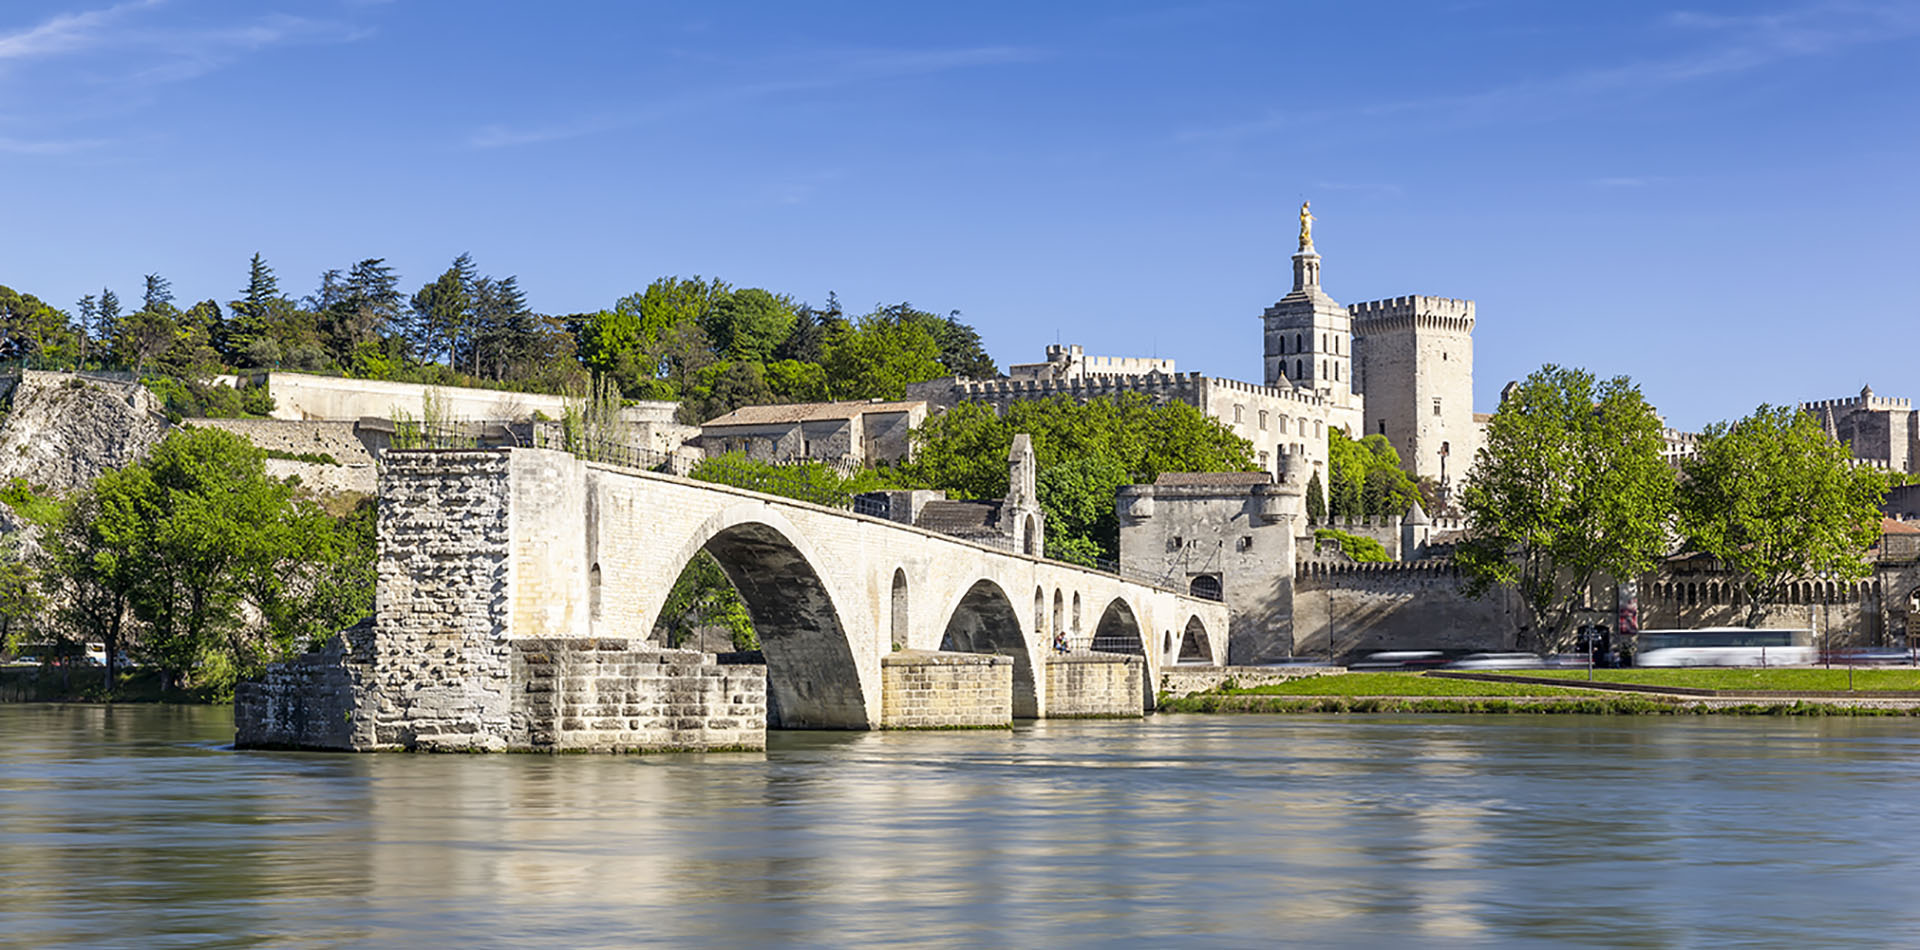 Europe France Avignon beautiful stone buildings and bridge view of the river and a castle - luxury vacation destinations